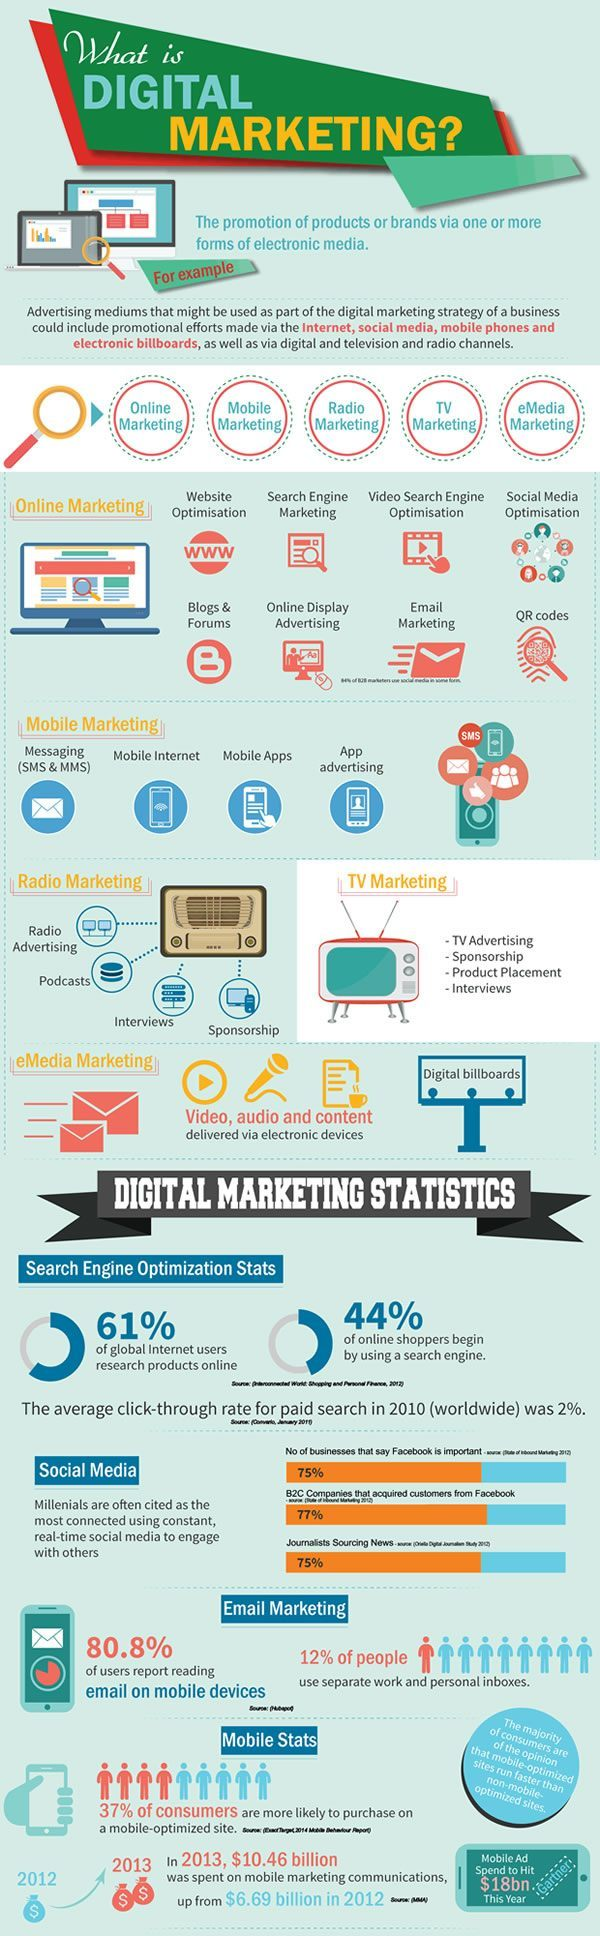 What is Digital Marketing - an Infographic